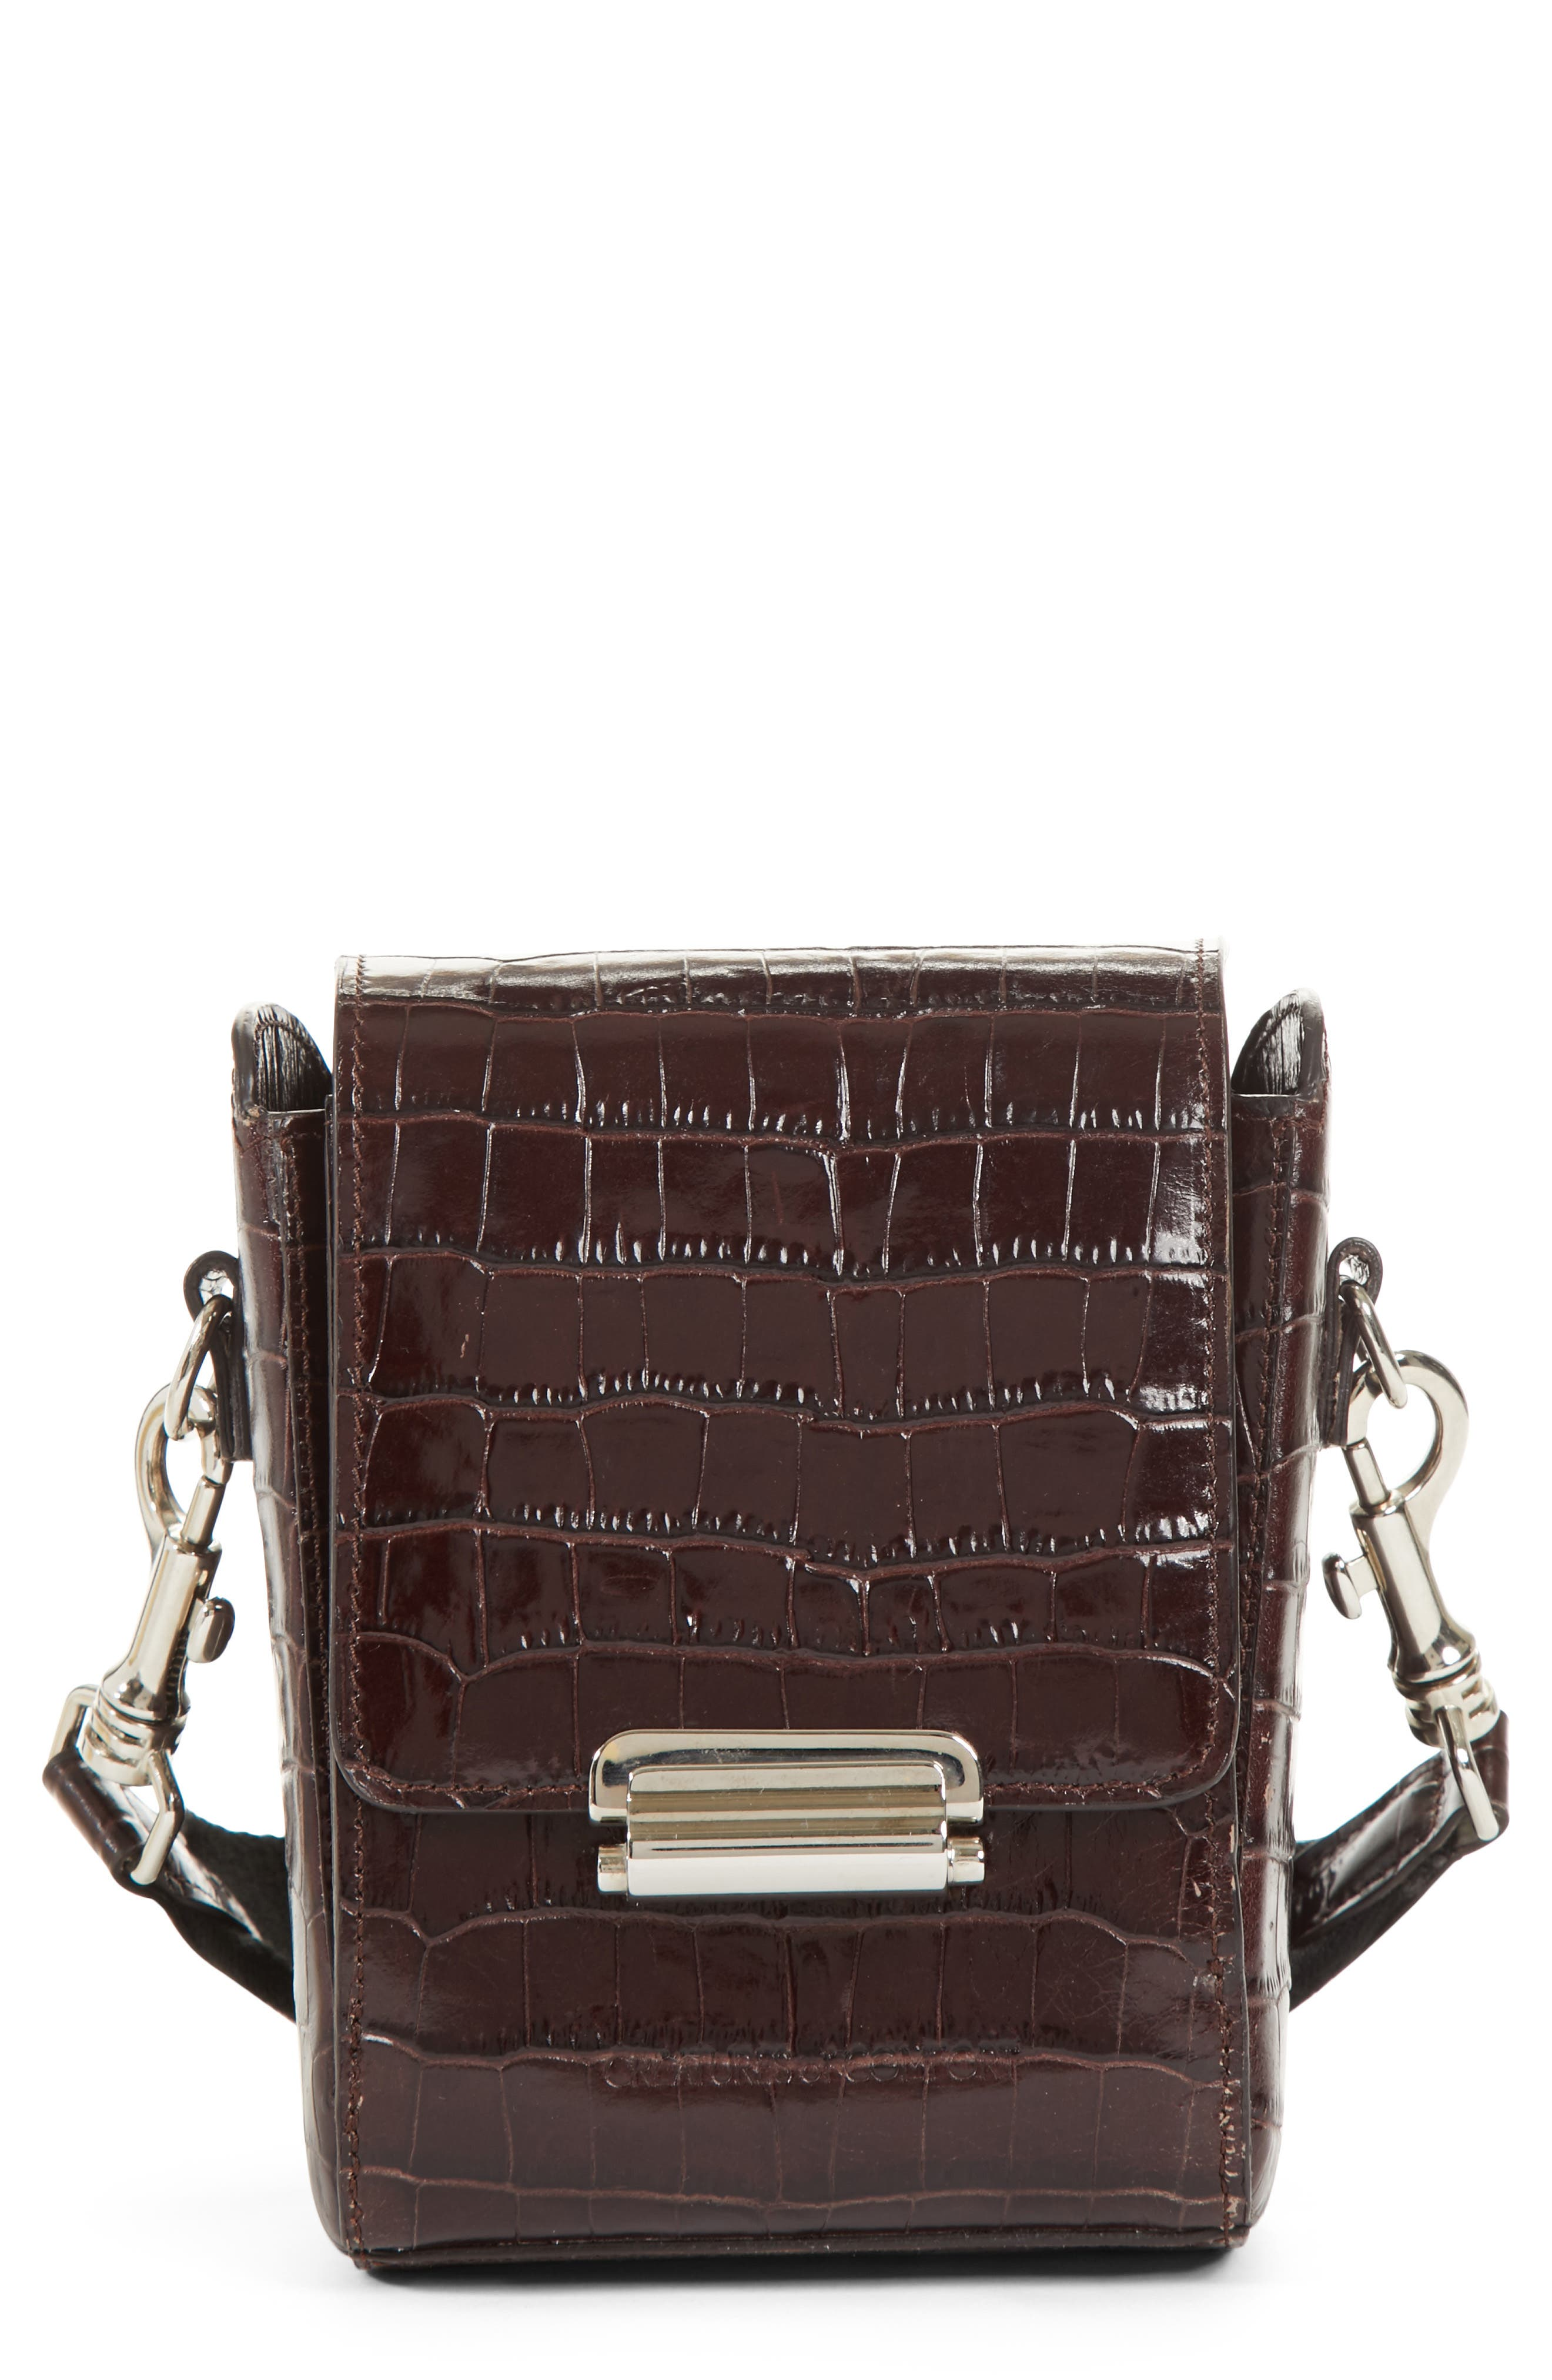 Small Croc Embossed Leather Camera Bag,                             Main thumbnail 1, color,                             200